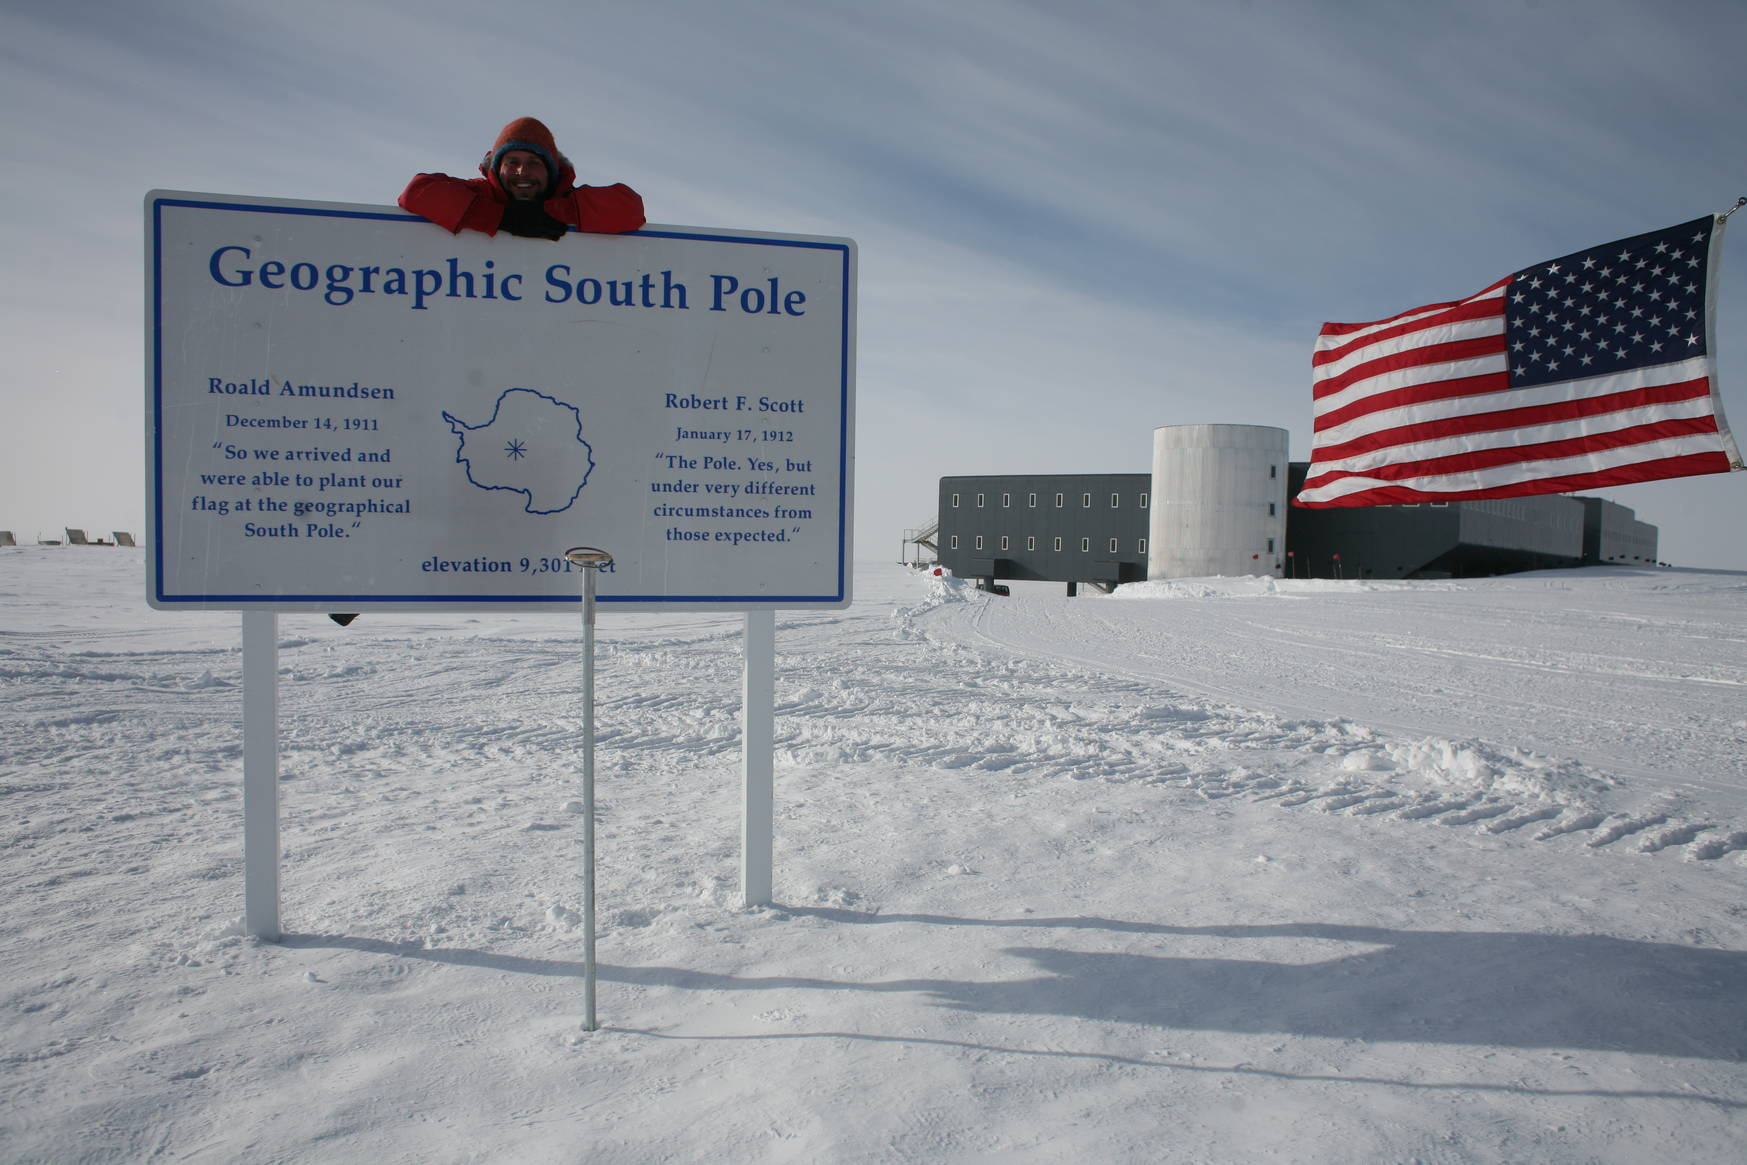 The actual geographical south pole moves with the ice, a few meters every year. Every winter crew produces a marker for the next year, the new marker is placed at New Year's.